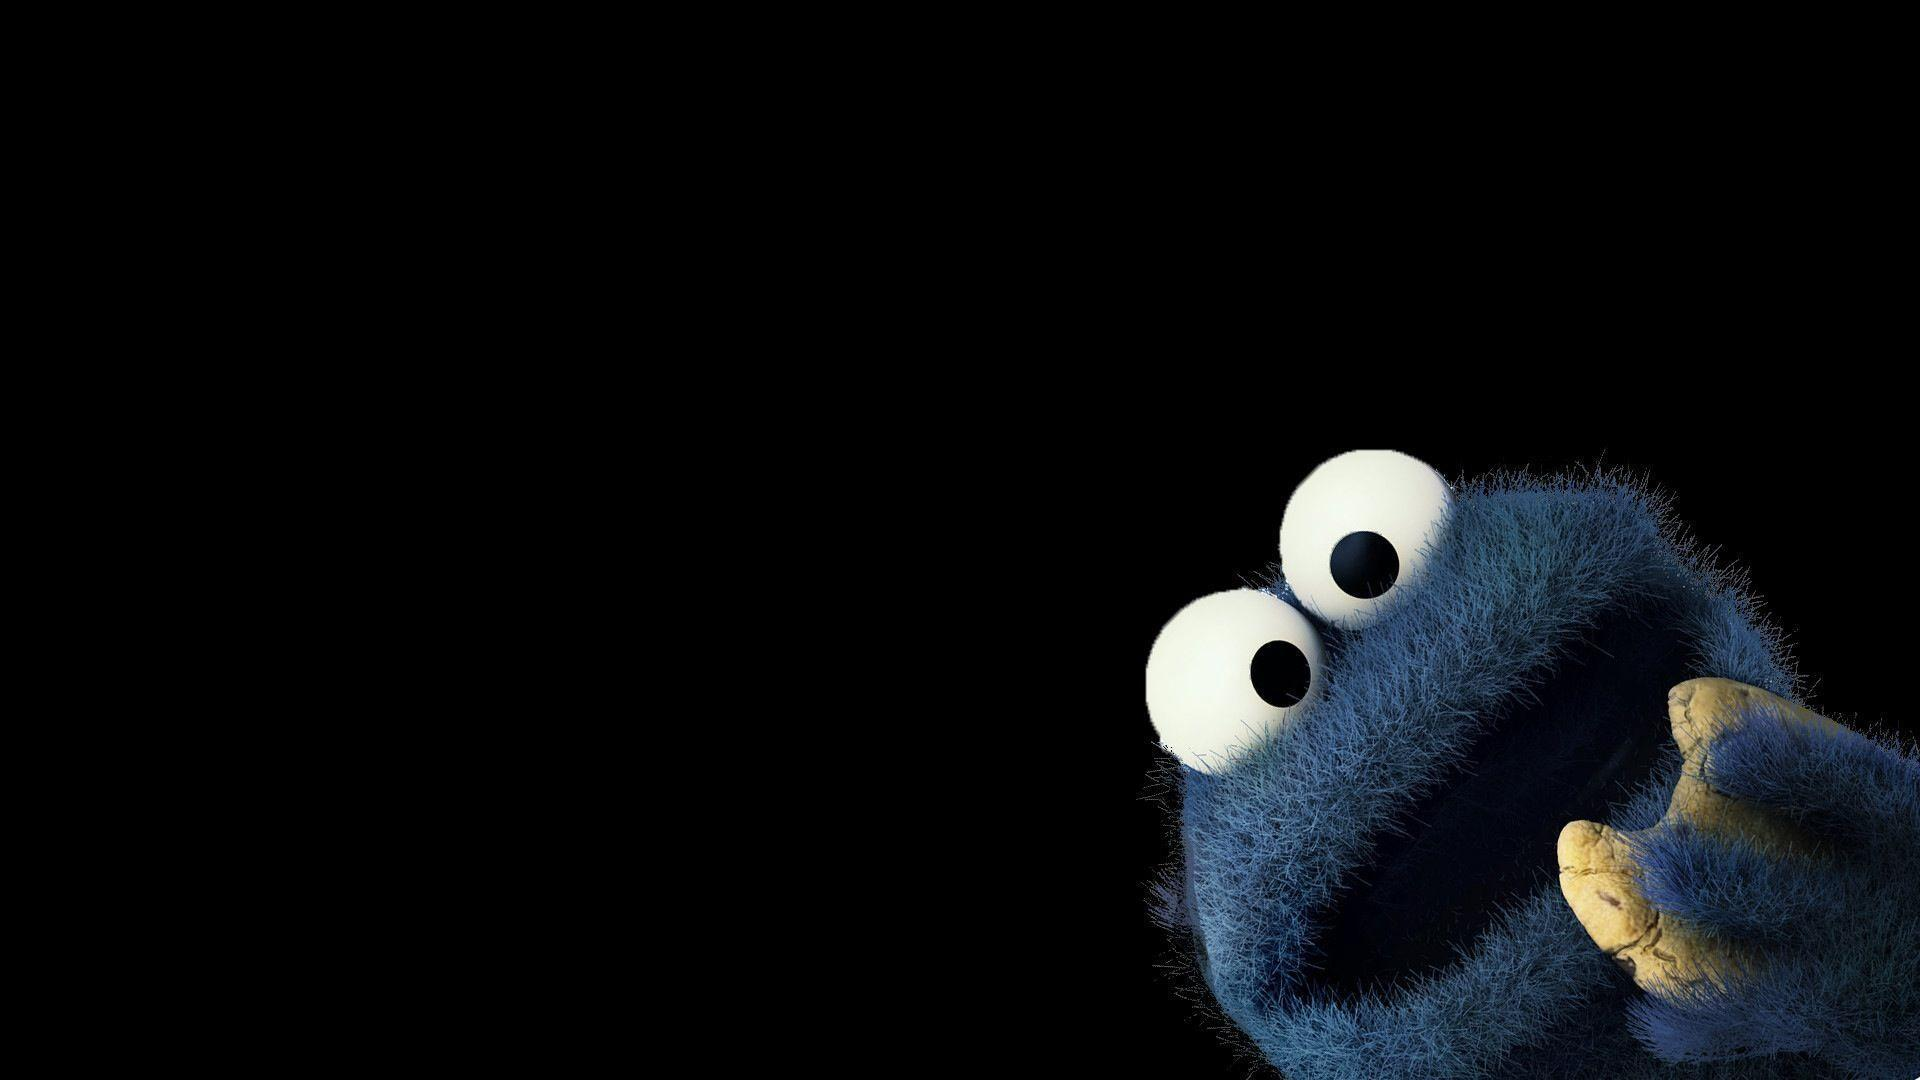 Cookie Monster Wallpaper – Create Your Own Personal Computer wallpaper